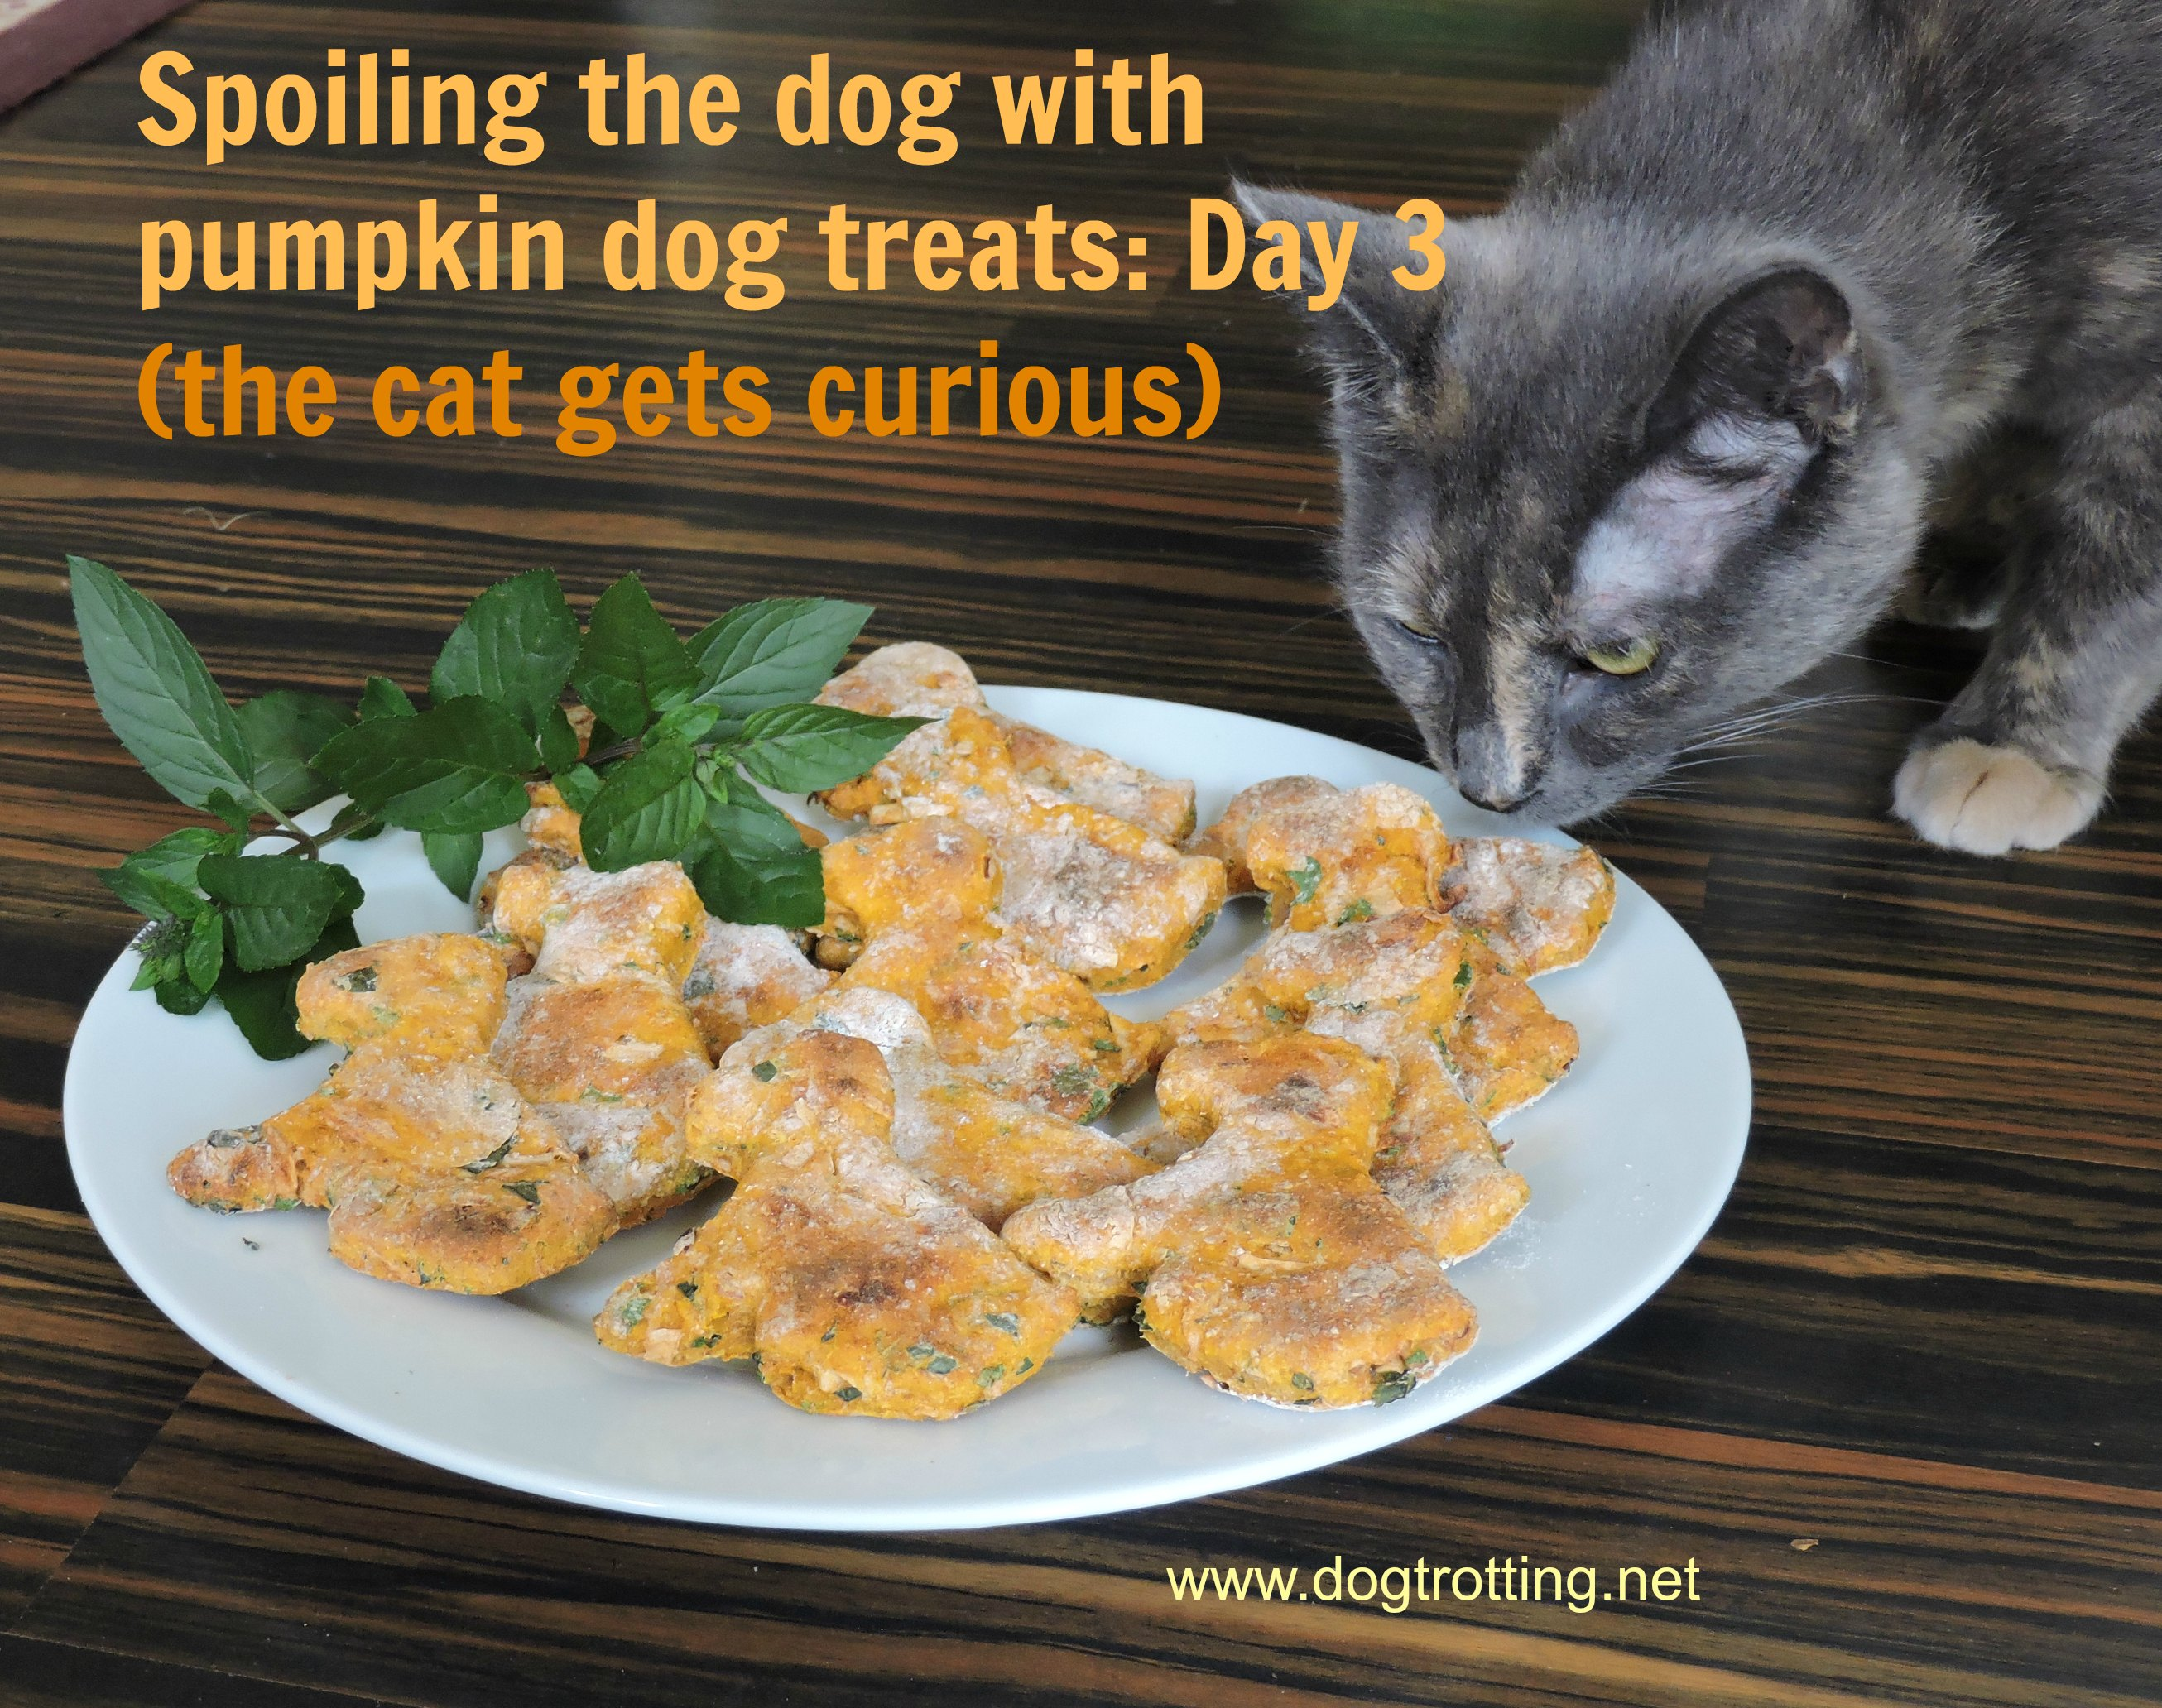 Spoiling the dog with pumpkin dog treats: Day 3